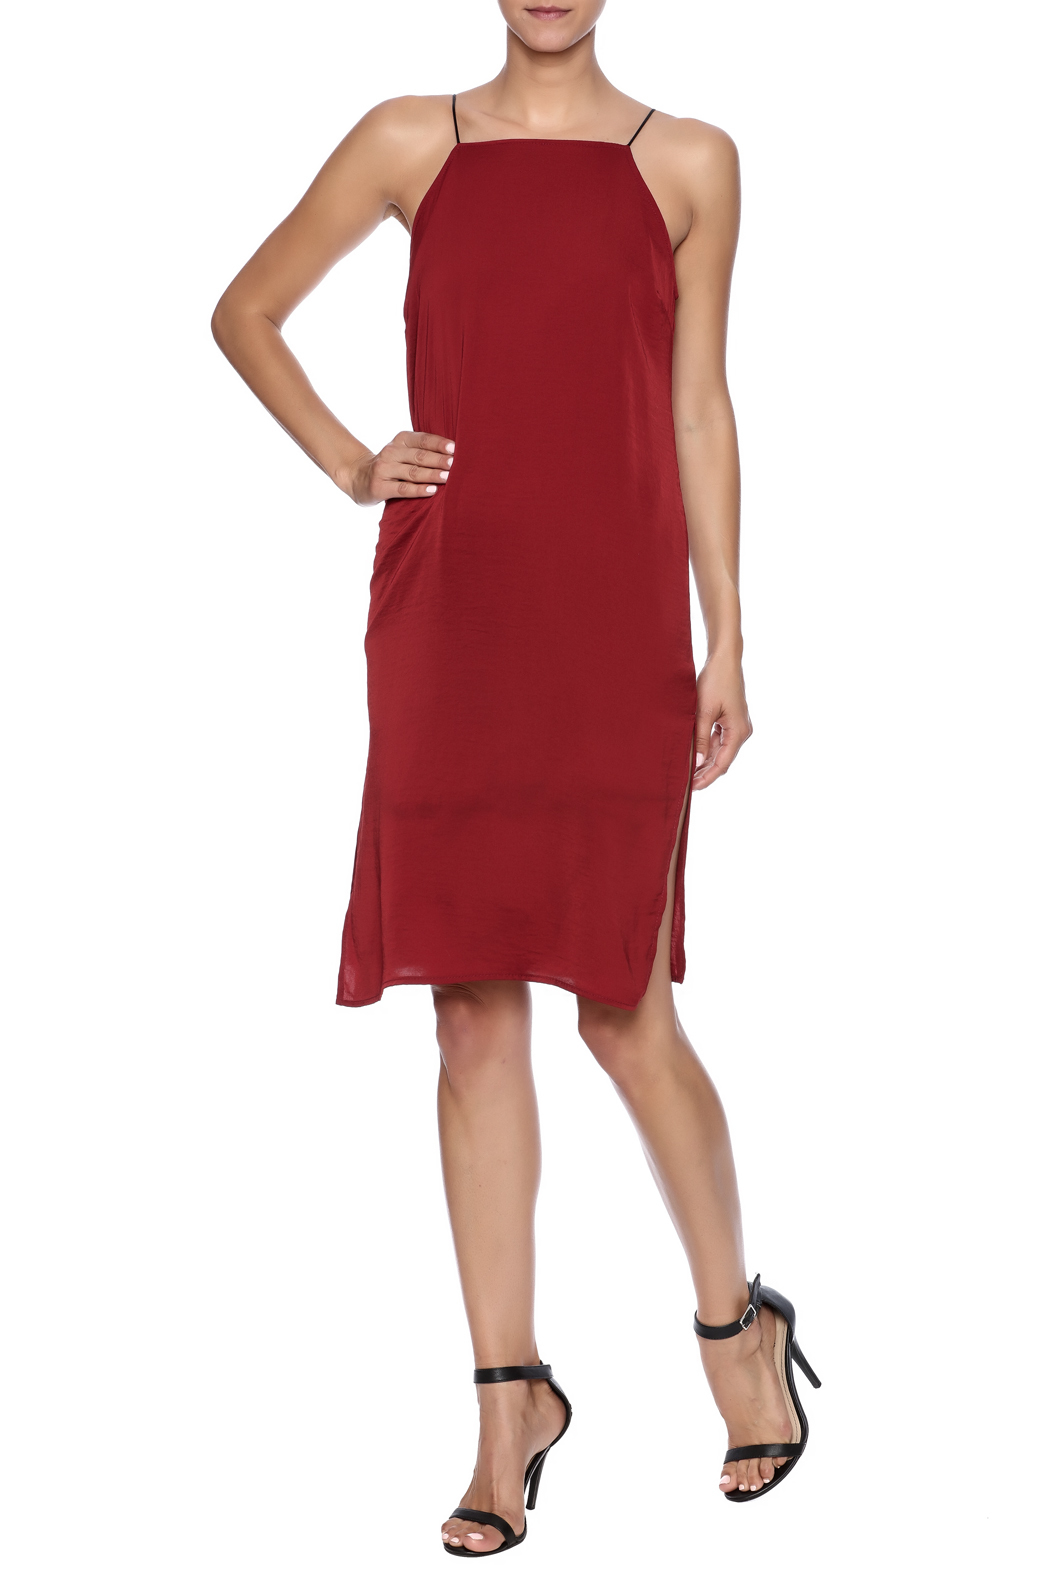 red slip dress #swoonboutique | Red slip dress, Swoon